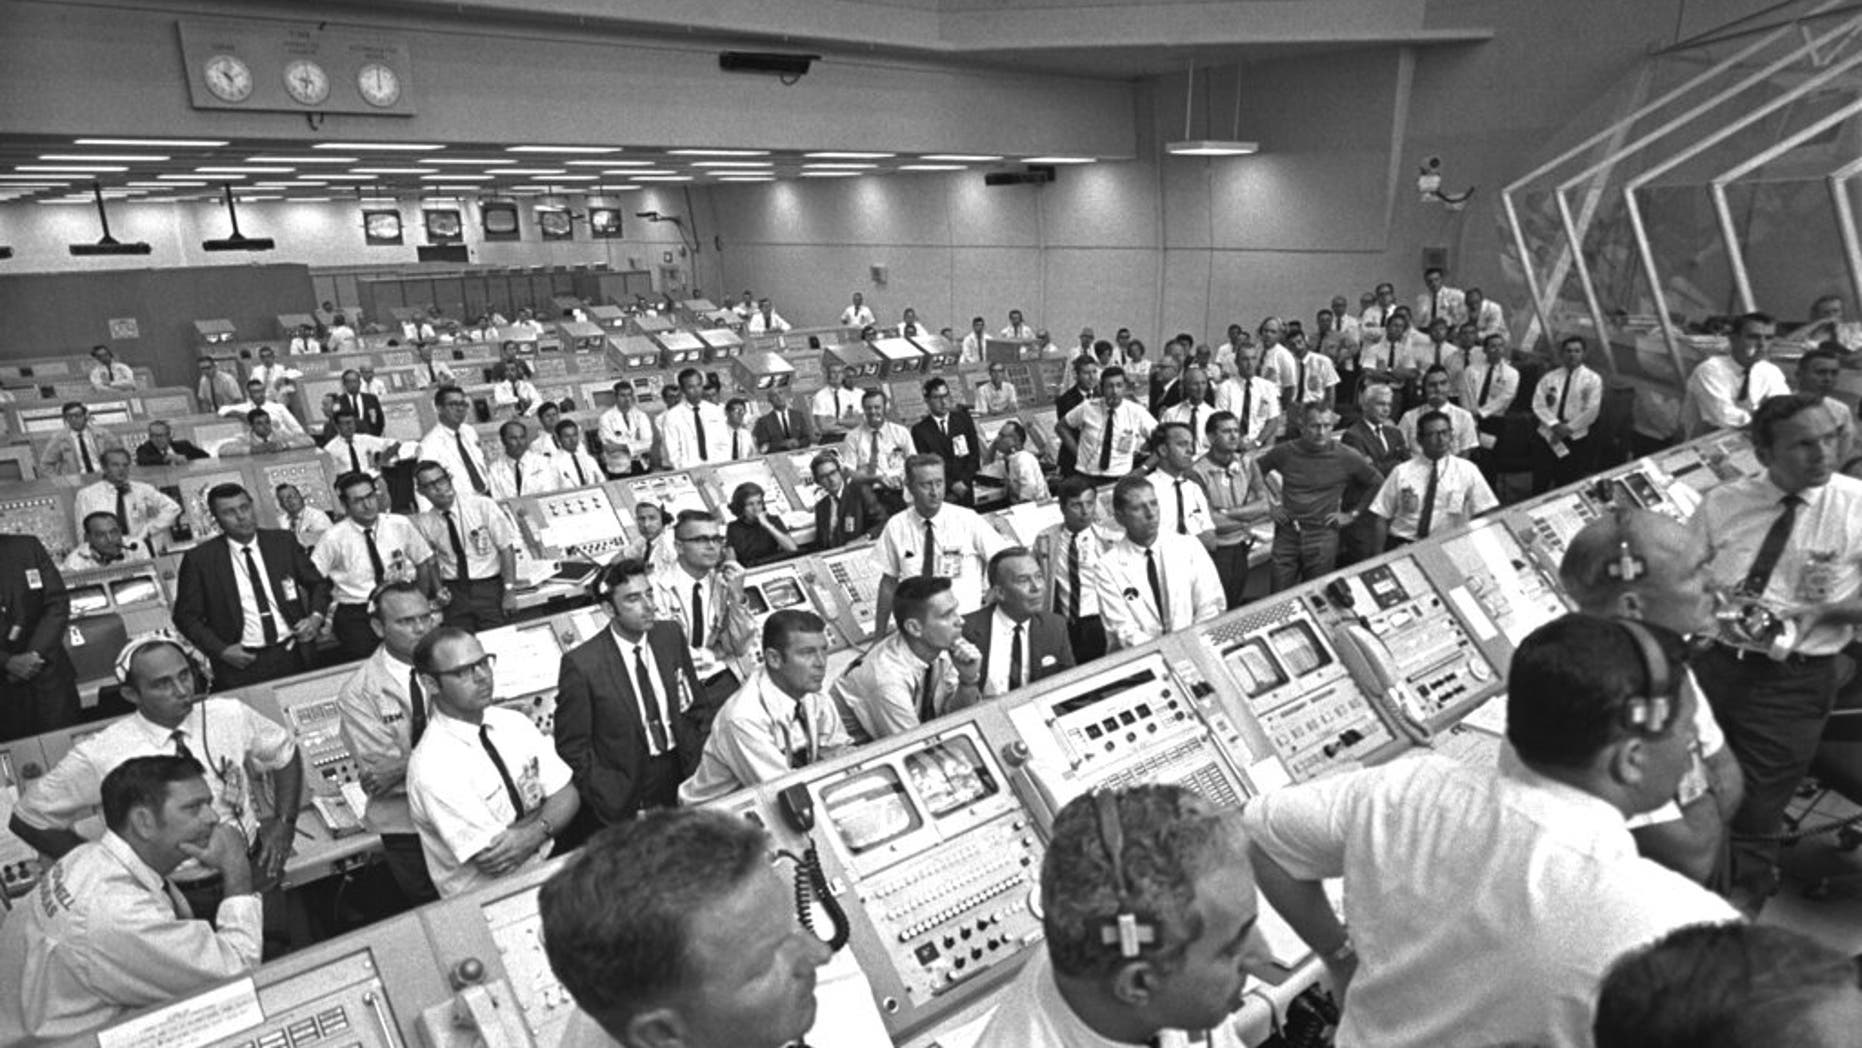 """This July 1969 photo provided by NASA shows launch controllers in the firing room at the Kennedy Space Center in Florida during the Apollo 11 mission to the moon. In the third row from foreground at center is JoAnn Morgan, the first female launch controller. """"I was there. I wasn't going anywhere. I had a real passion for it,"""" Morgan said in a July 2019 interview. """"Finally, 99 percent of them accepted that 'JoAnn's here and we're stuck with her.' """" (NASA via AP)"""